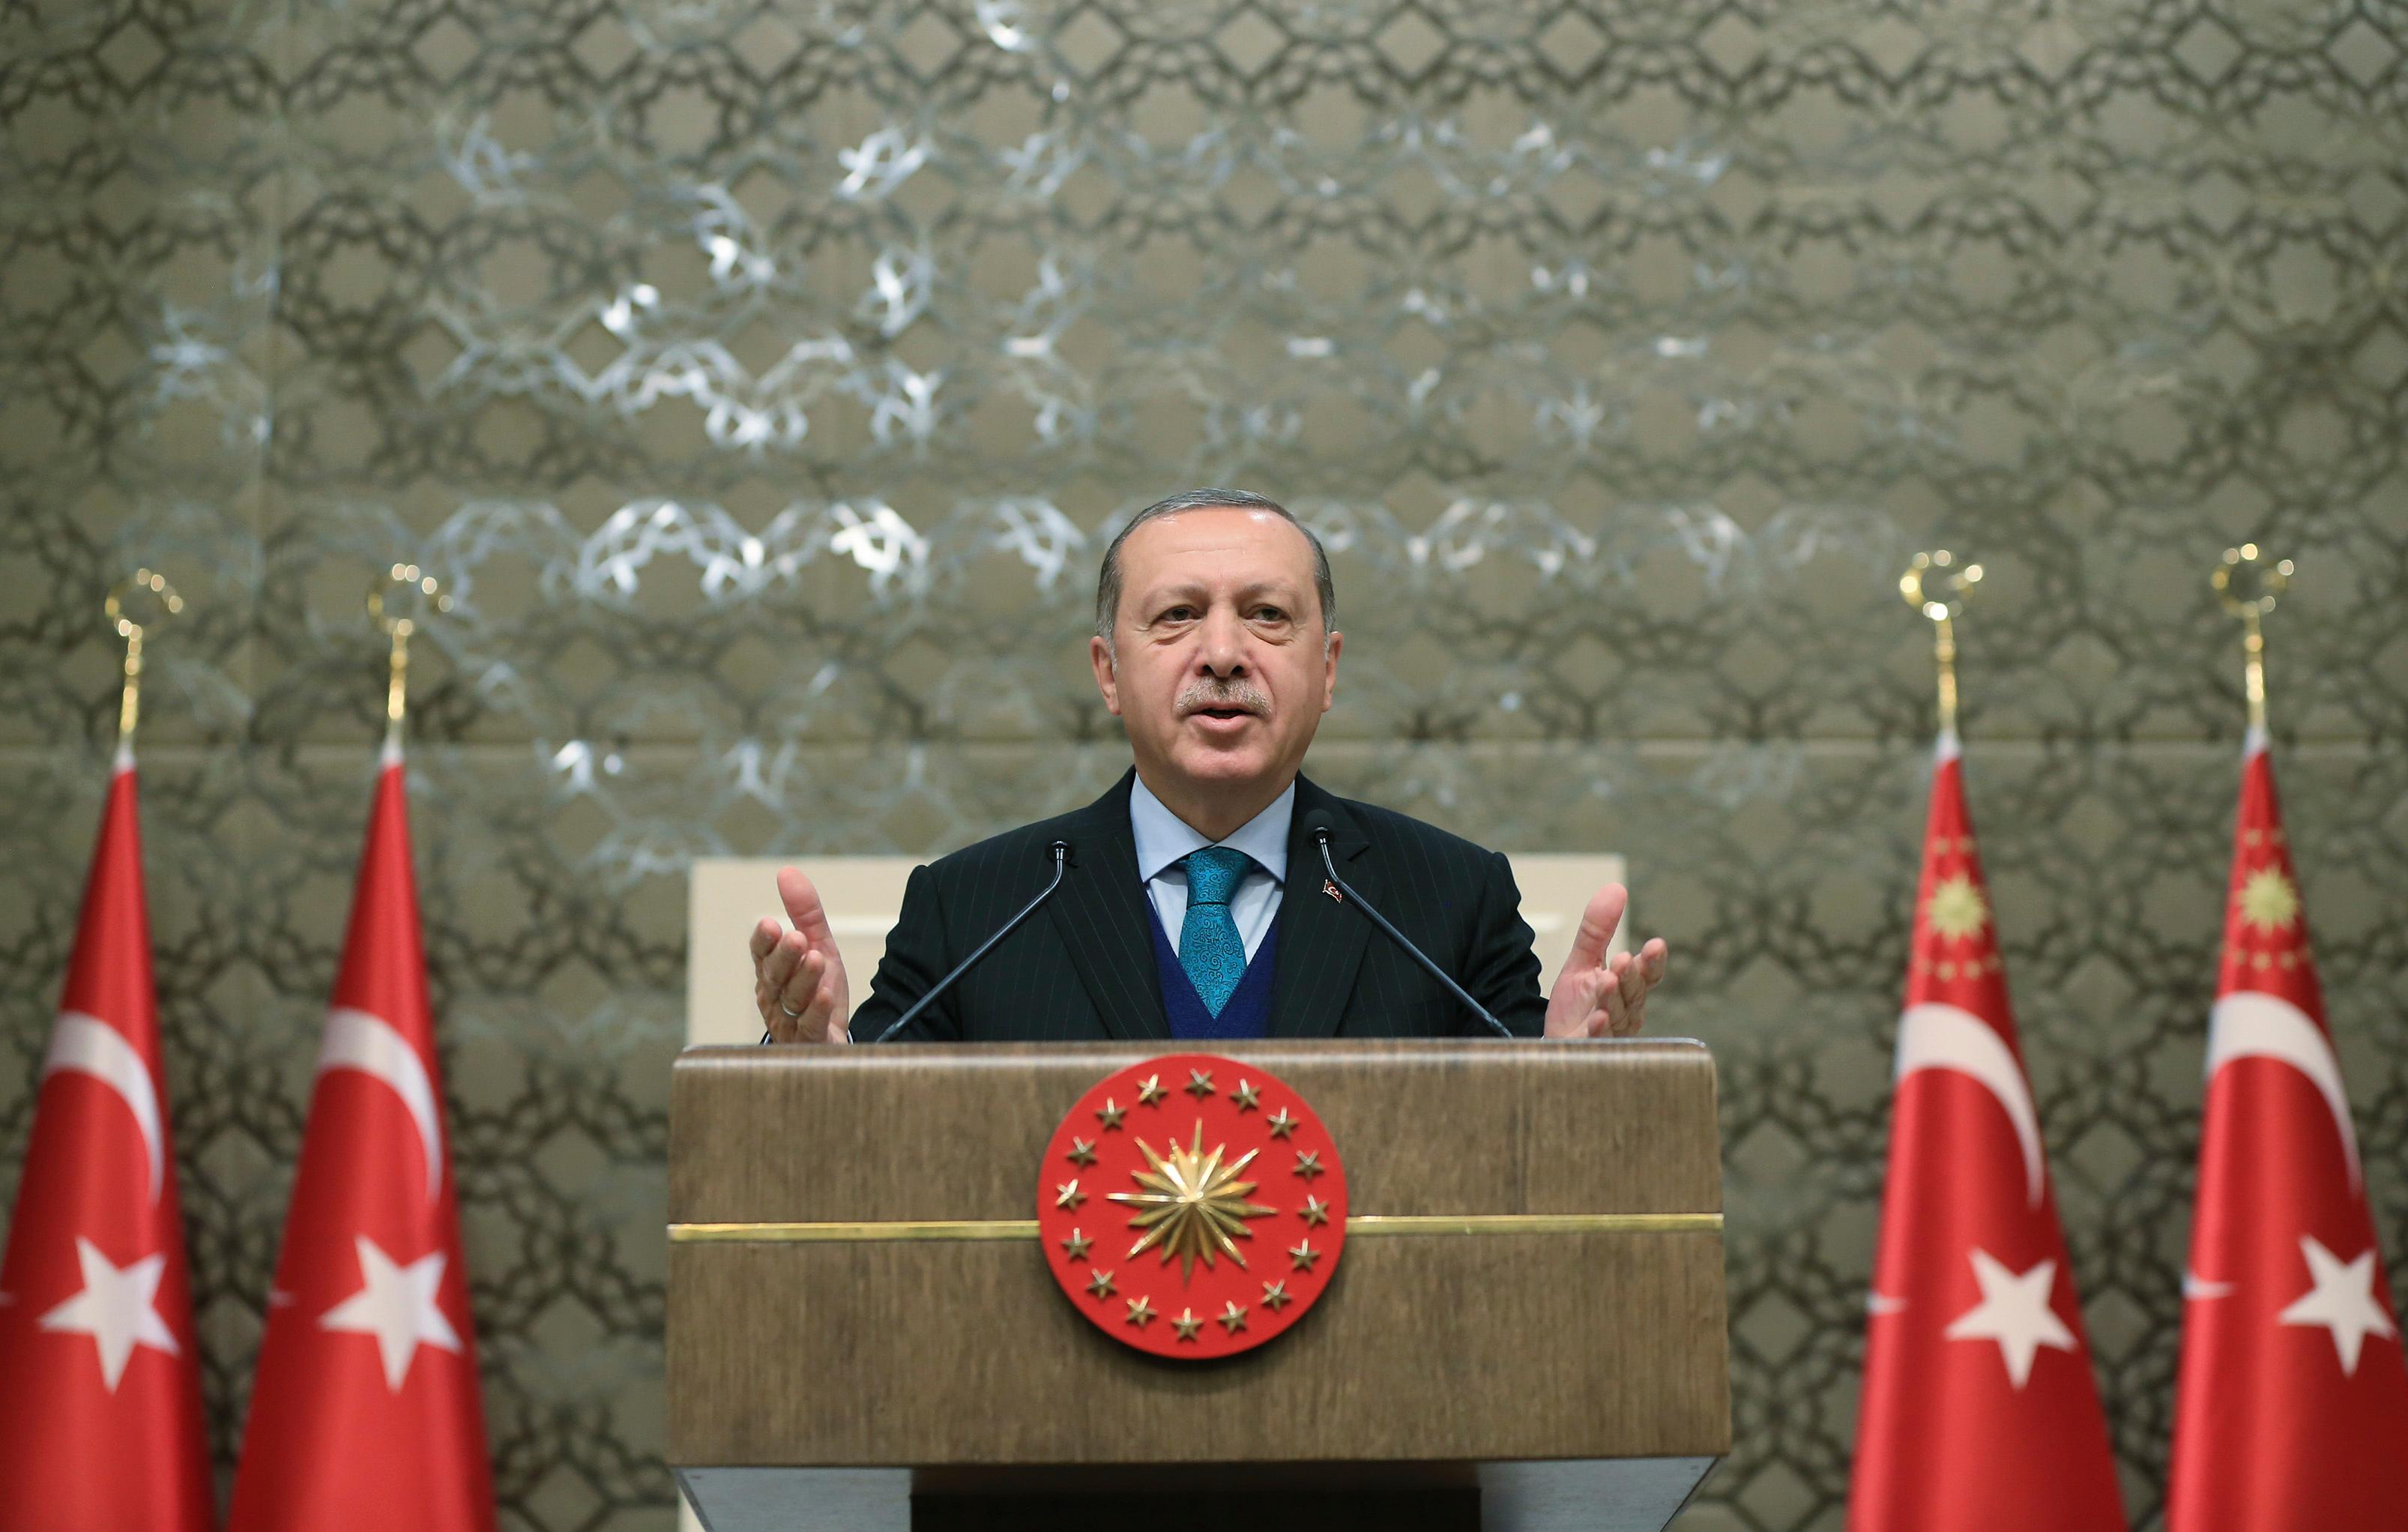 "Turkey's President Recep Tayyip Erdogan, gestures as he delivers a speech at an event in Ankara, Turkey, Tuesday, Dec. 12, 2017. Leaders and high-ranking officials of Muslim countries will meet Wednesday Dec. 13, in Istanbul for an extraordinary summit to discuss the U.S. recognition of Jerusalem as Israel's capital. Erdogan_ term president of the Organization of Islamic Cooperation, the umbrella organization of 57-members_has been vehemently critical of the U.S. move and said the leaders would relay a ""strong message."" (Pool Photo via AP)"